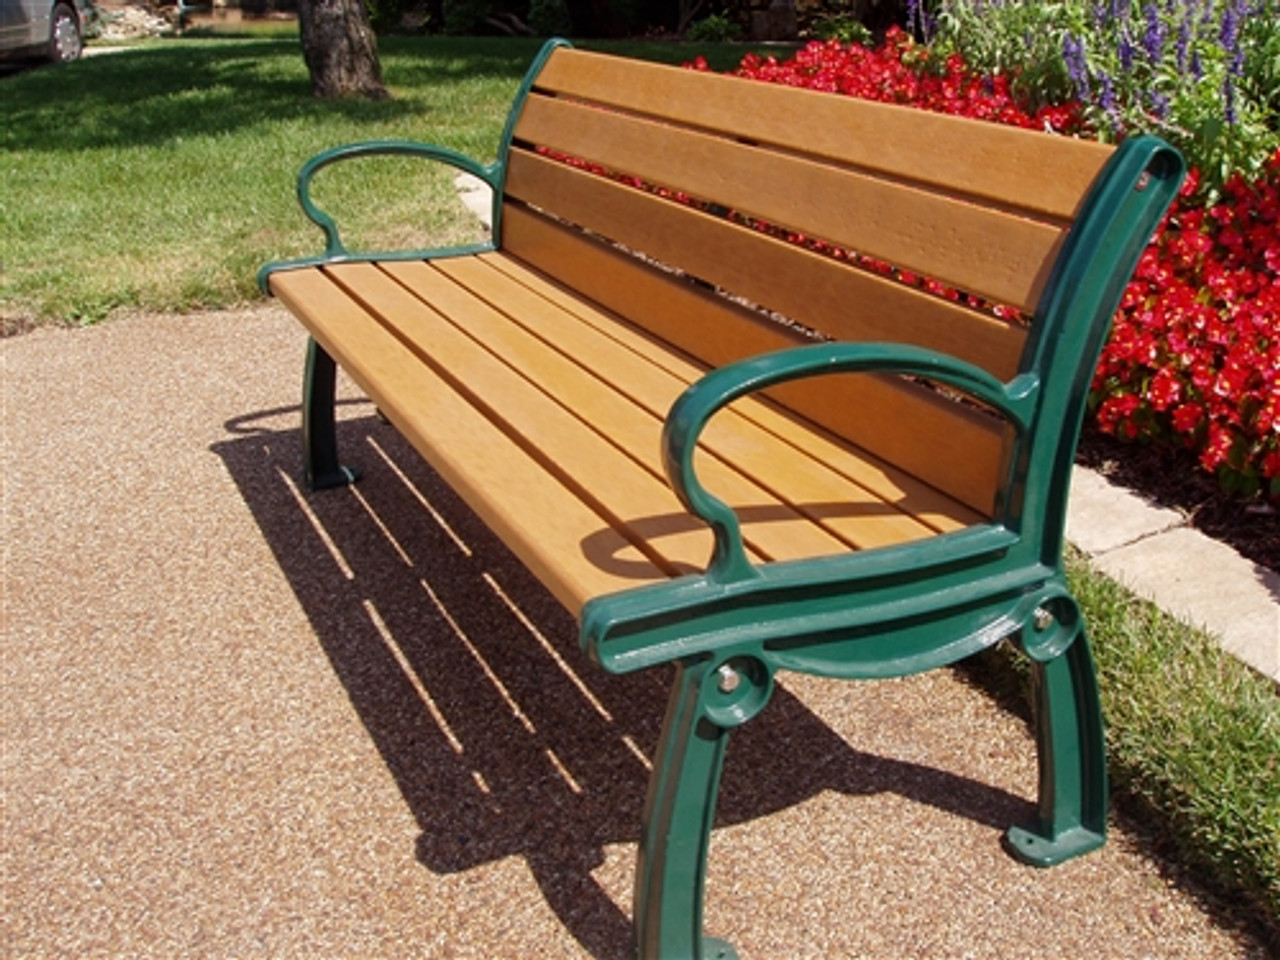 6' Heritage Park Bench_Recycled Plastic Slats